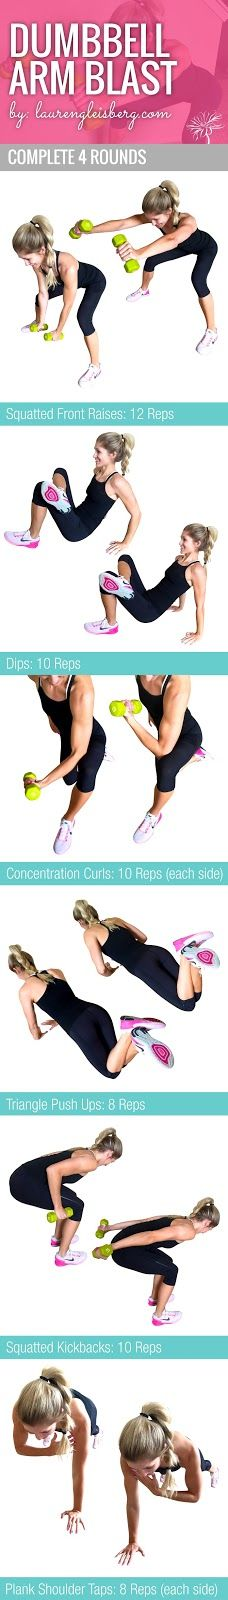 Arm Circuit To Tighten & Tone | click image for full workout plans by LaurenGleisberg.com